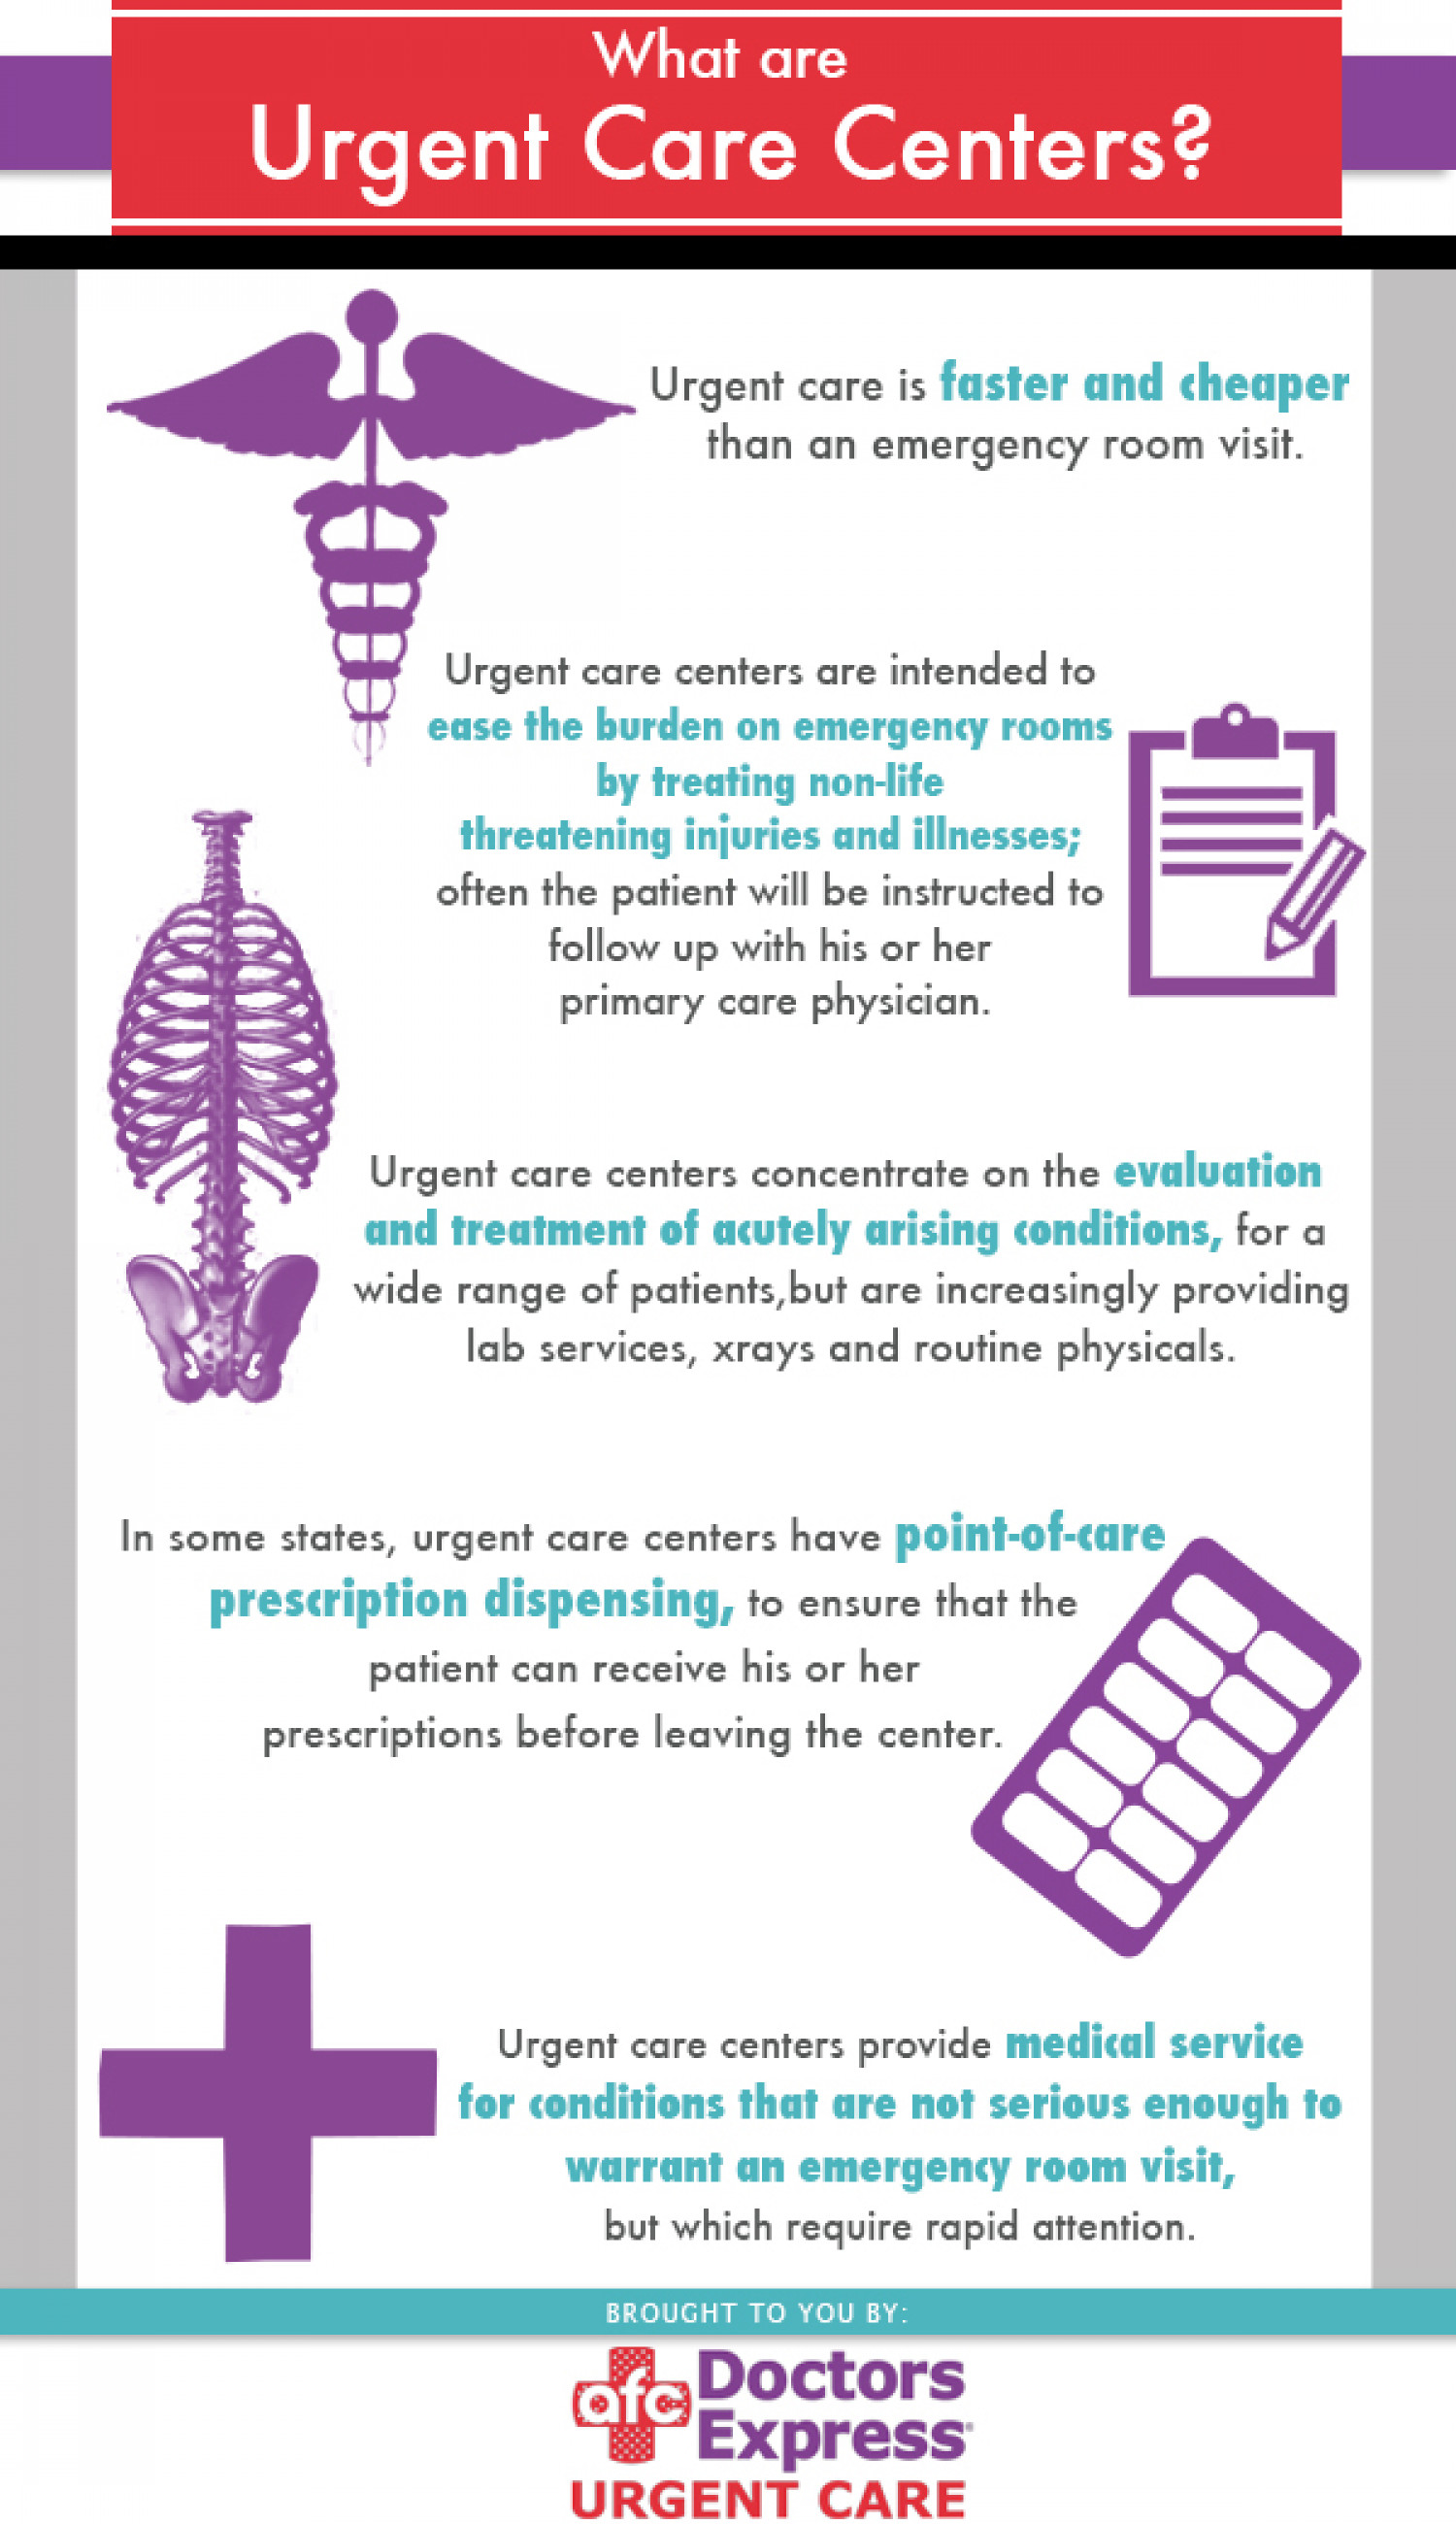 What Are Urgent Care Centers? Infographic